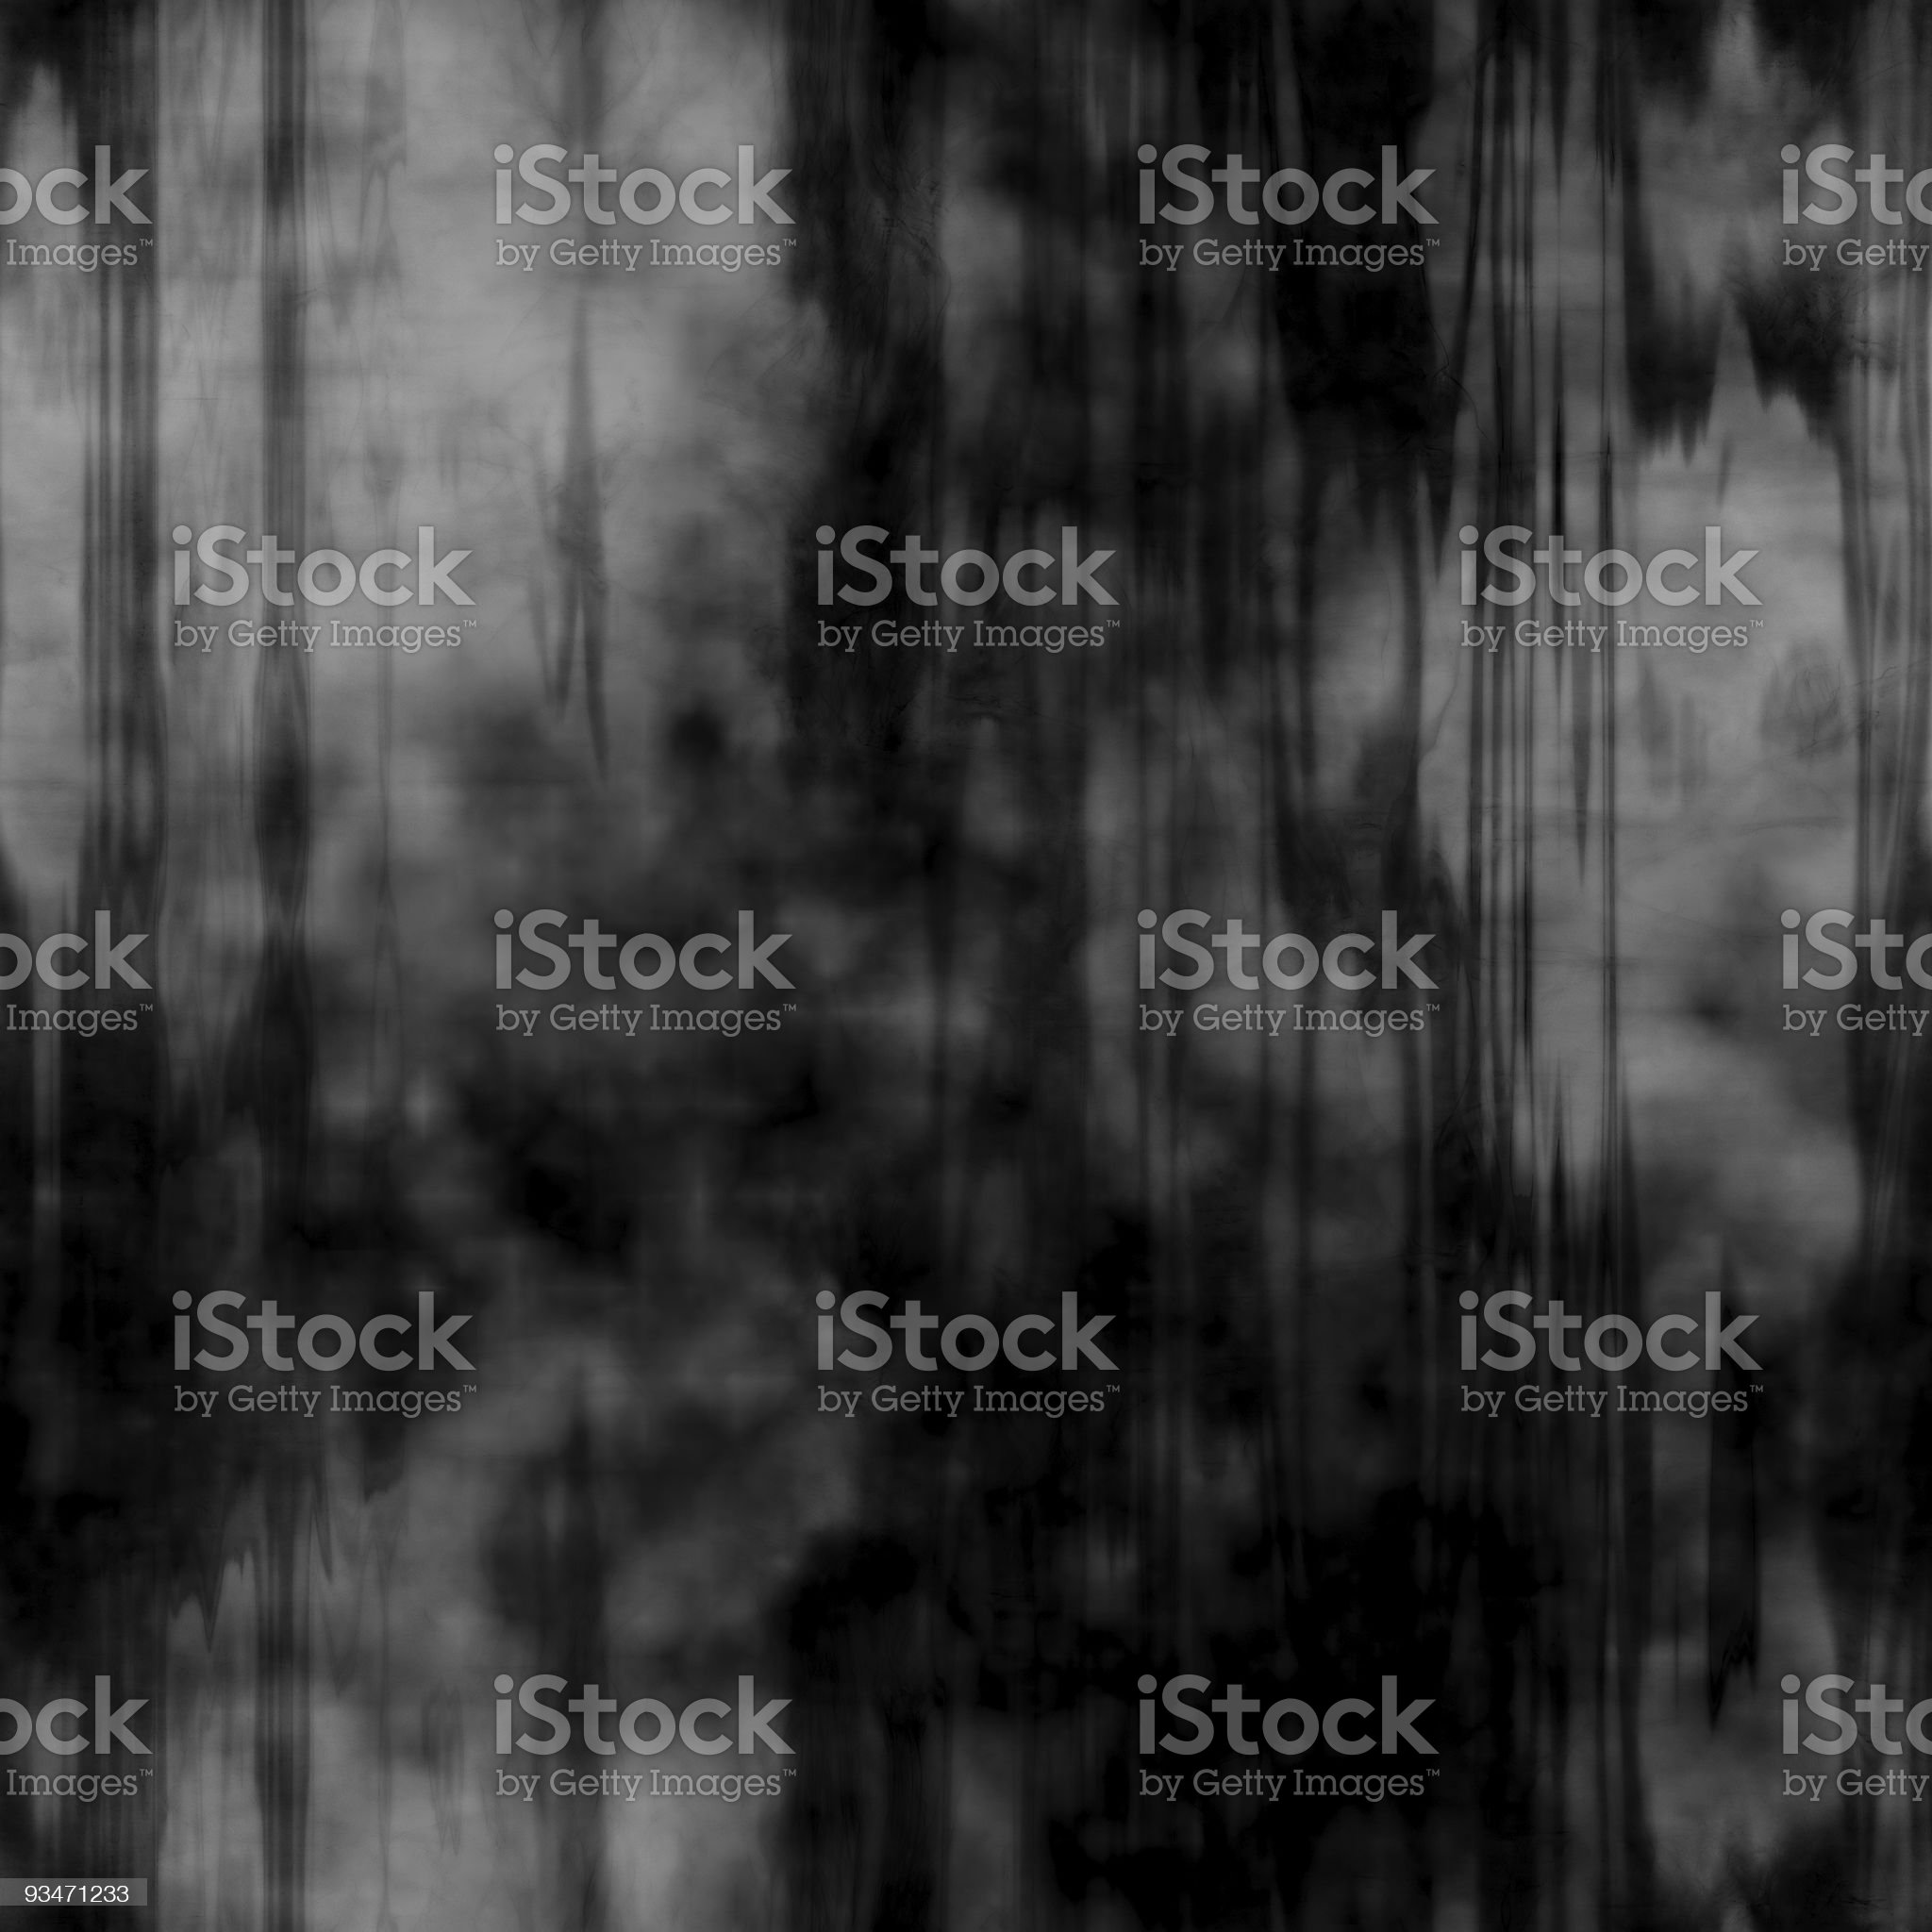 A seamless gray and black grunge background royalty-free stock photo